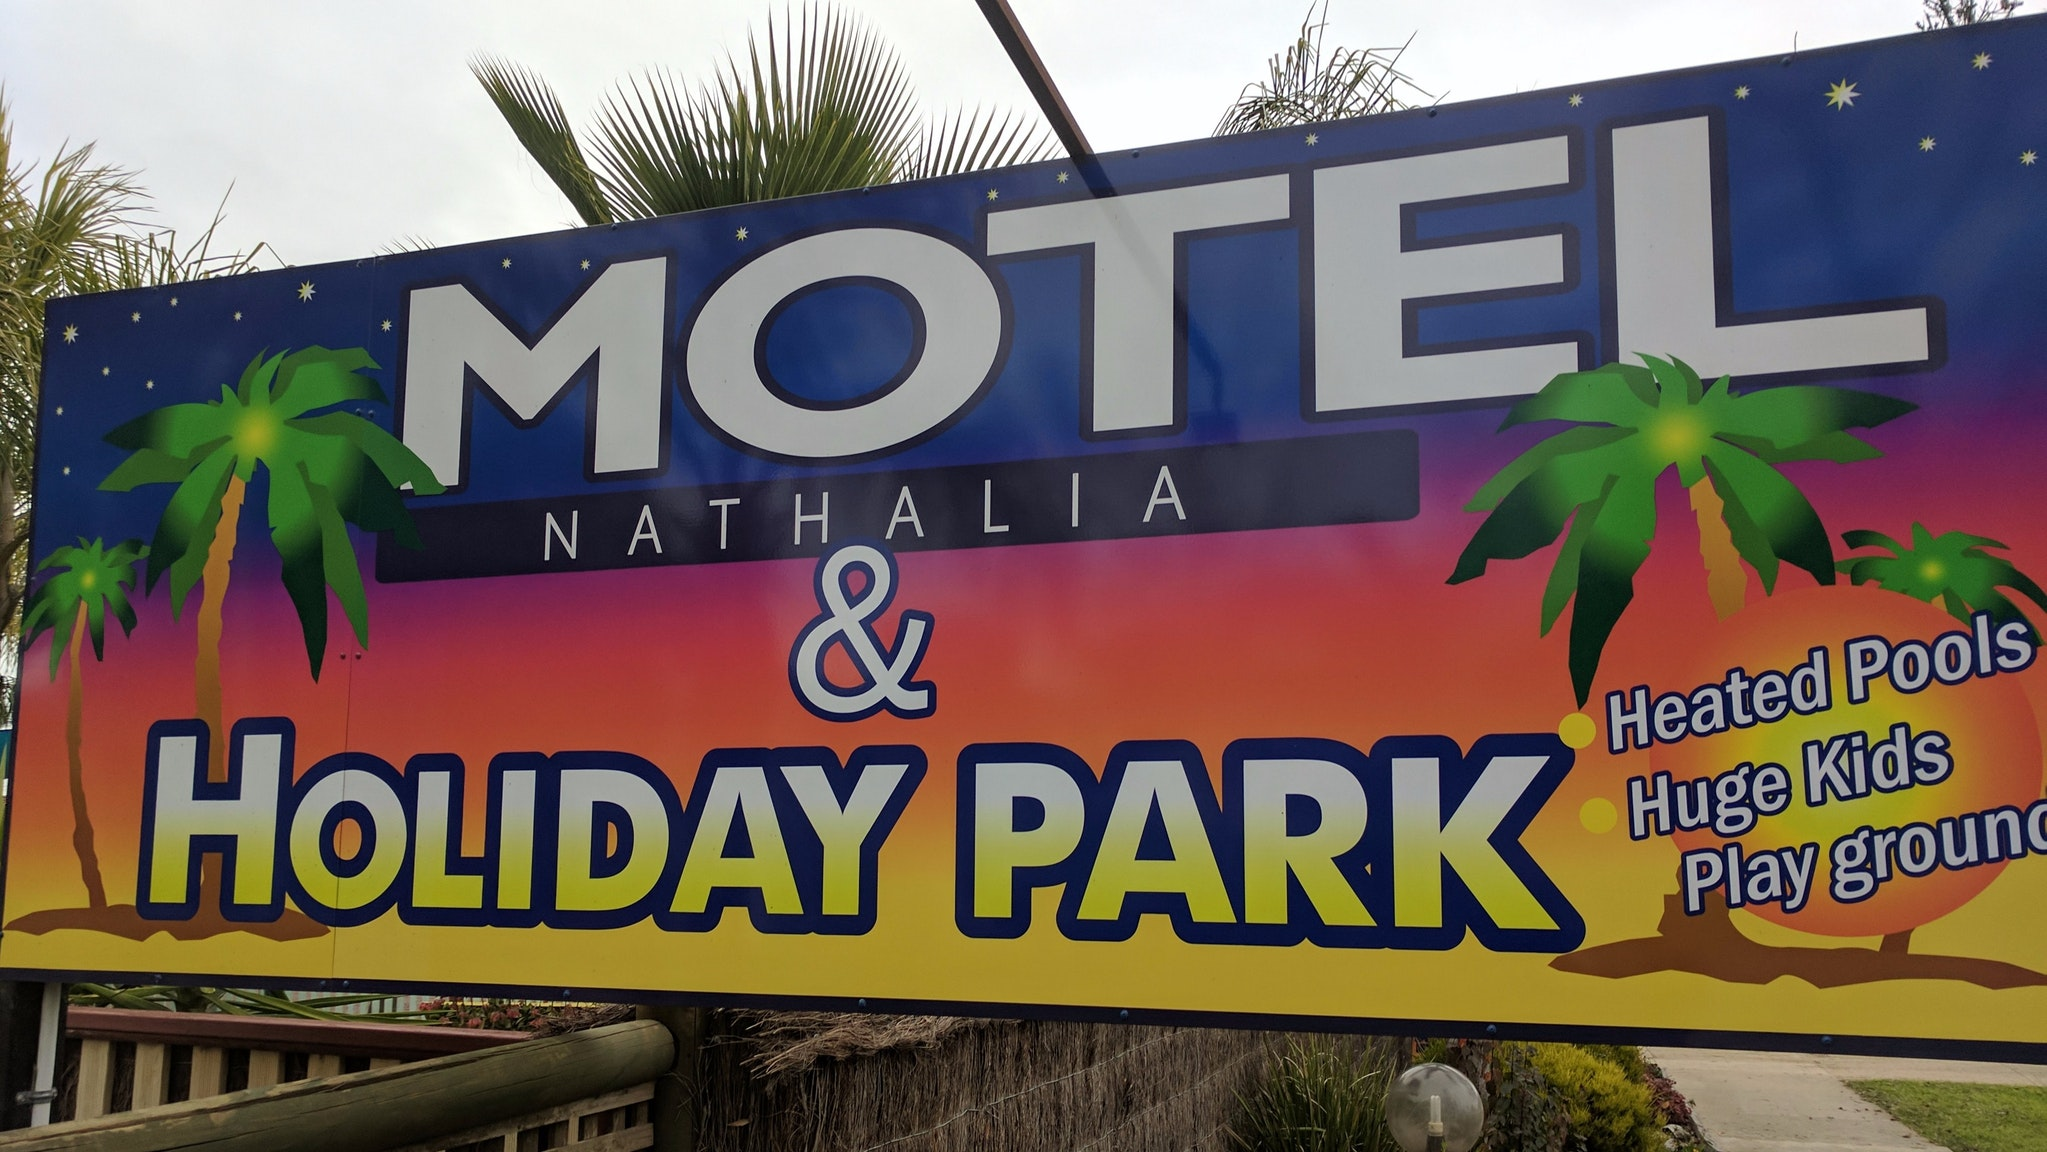 Nathalia Motel & Holiday Park